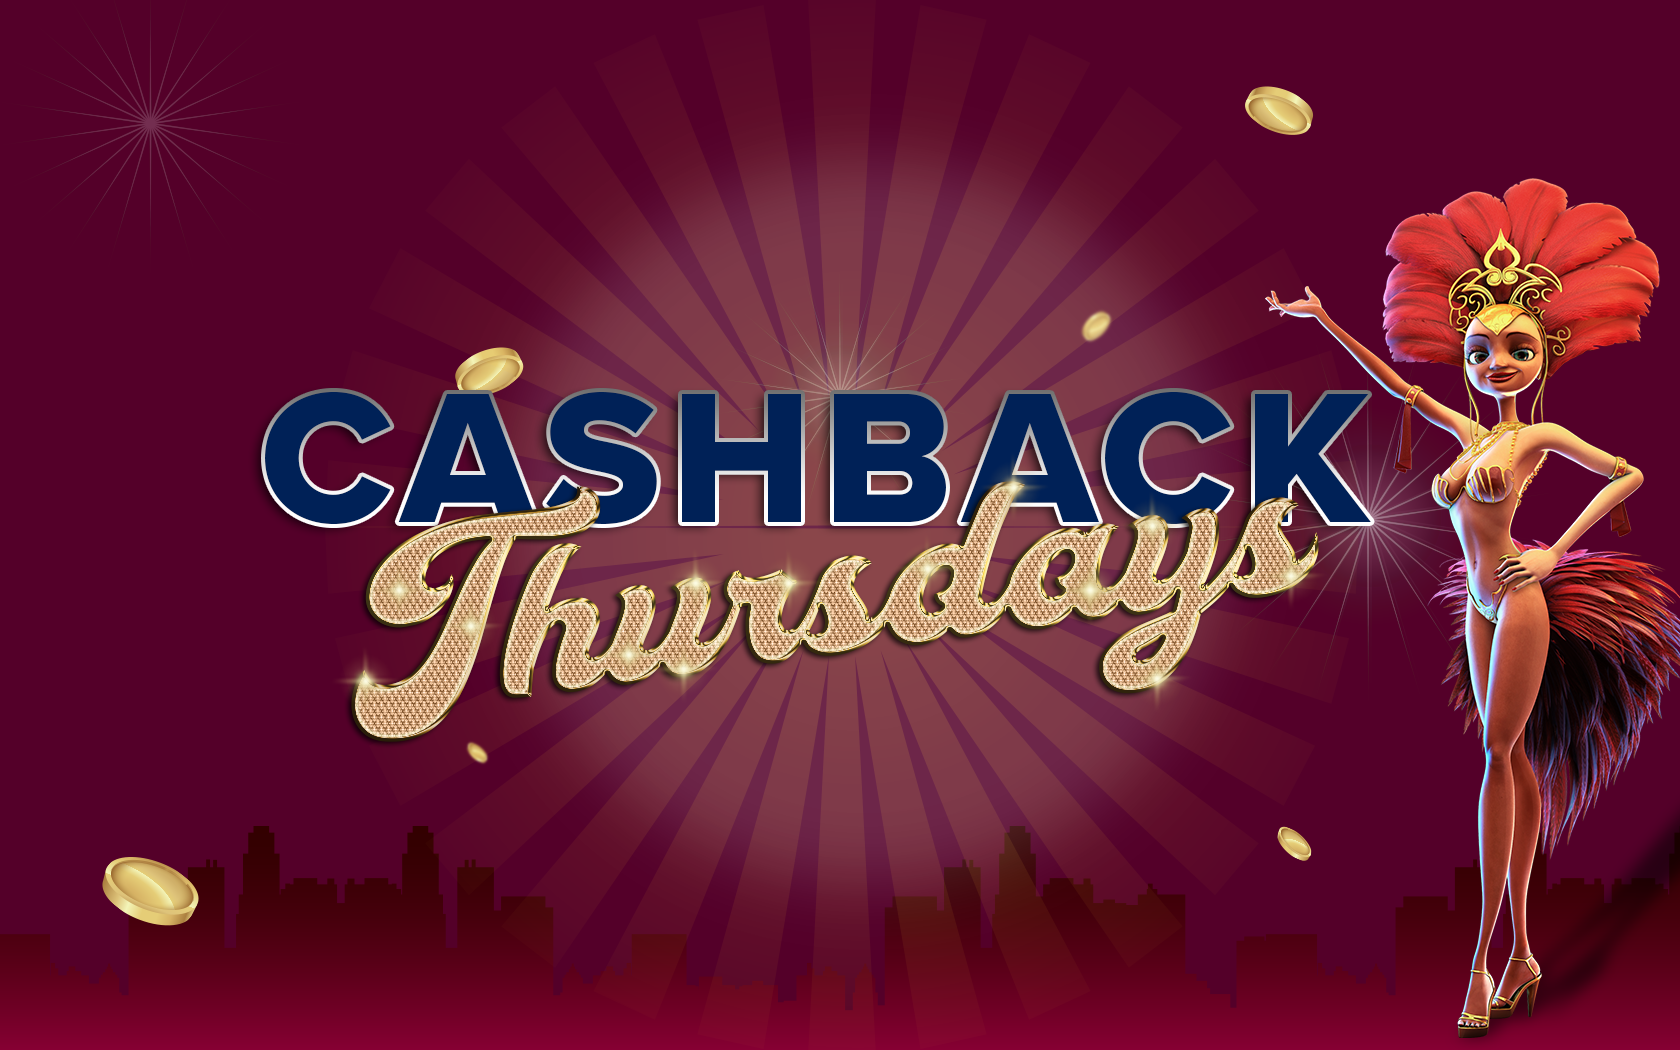 fairplay_cashback_thursday